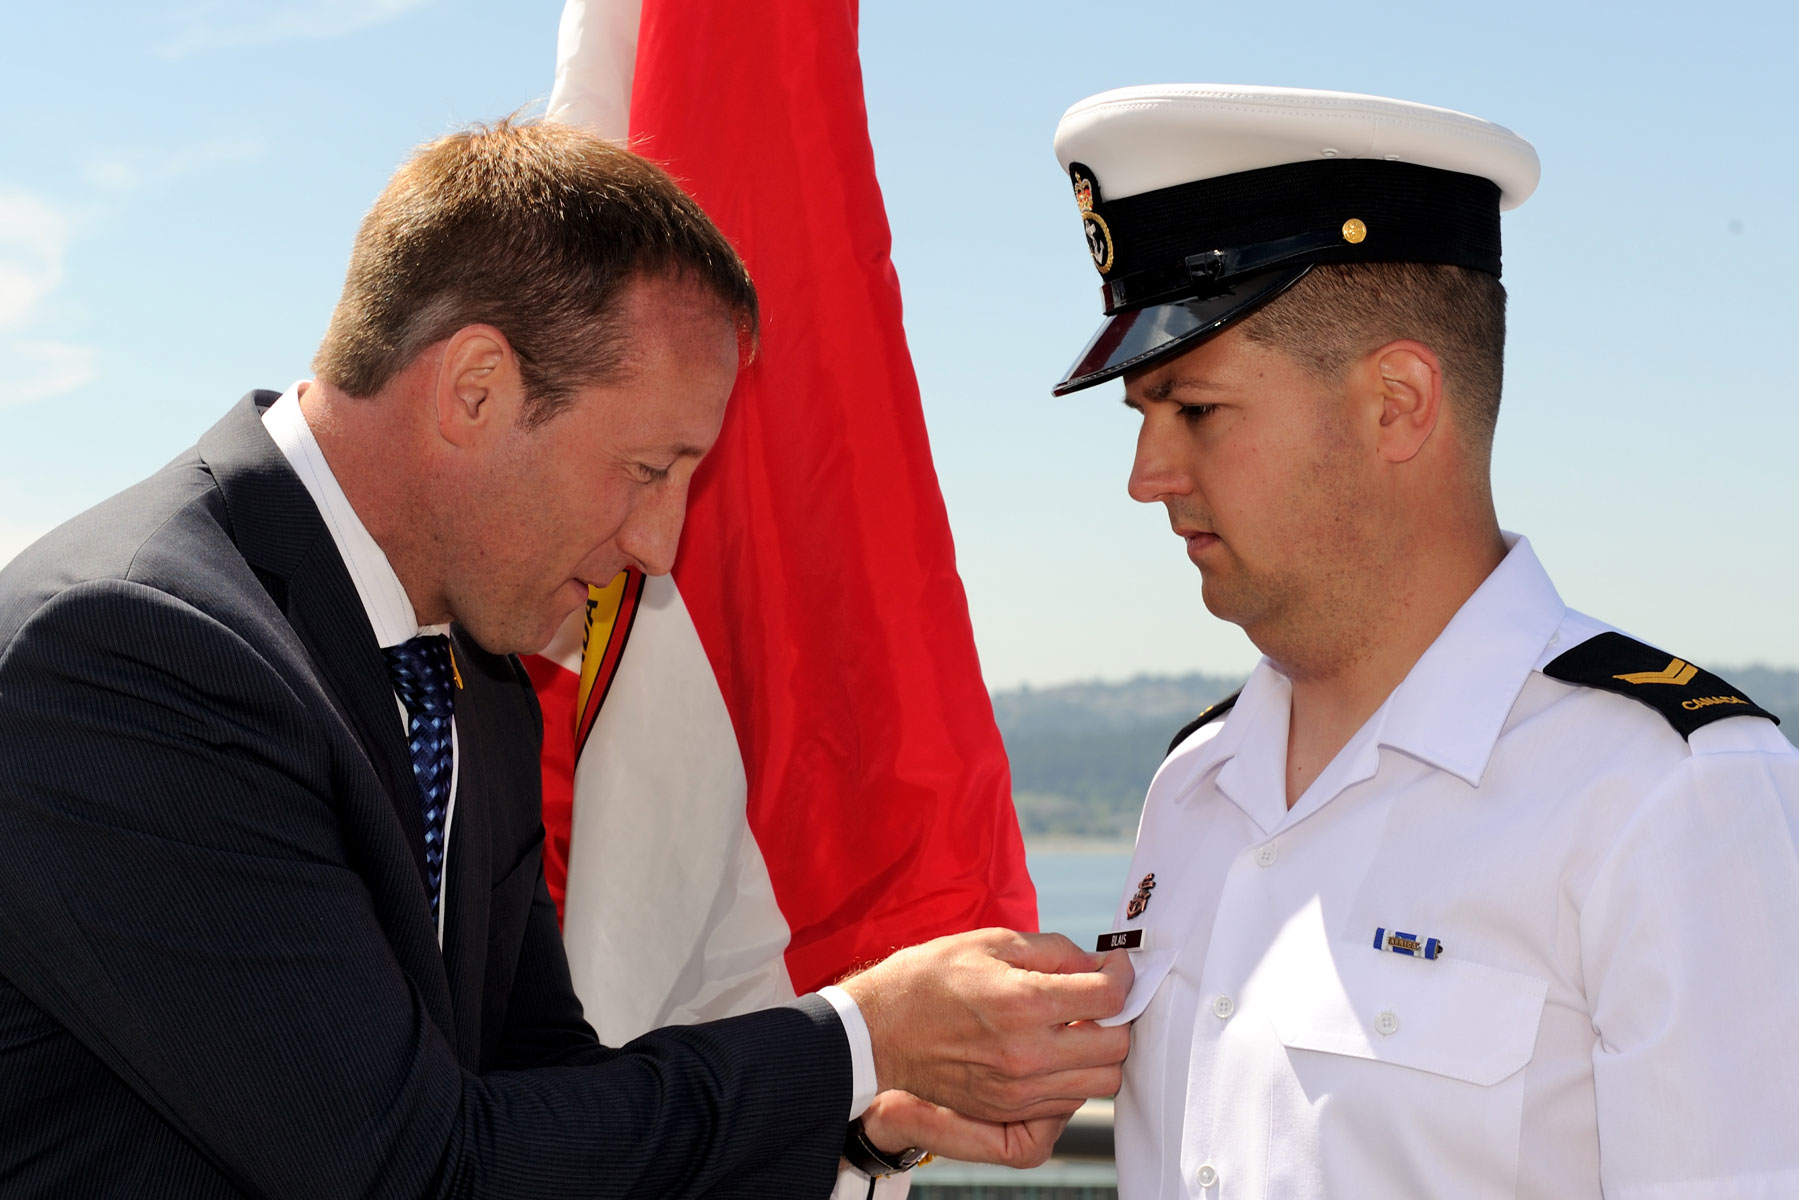 Minister MacKay introduces War of 1812 pins - Pacific Navy